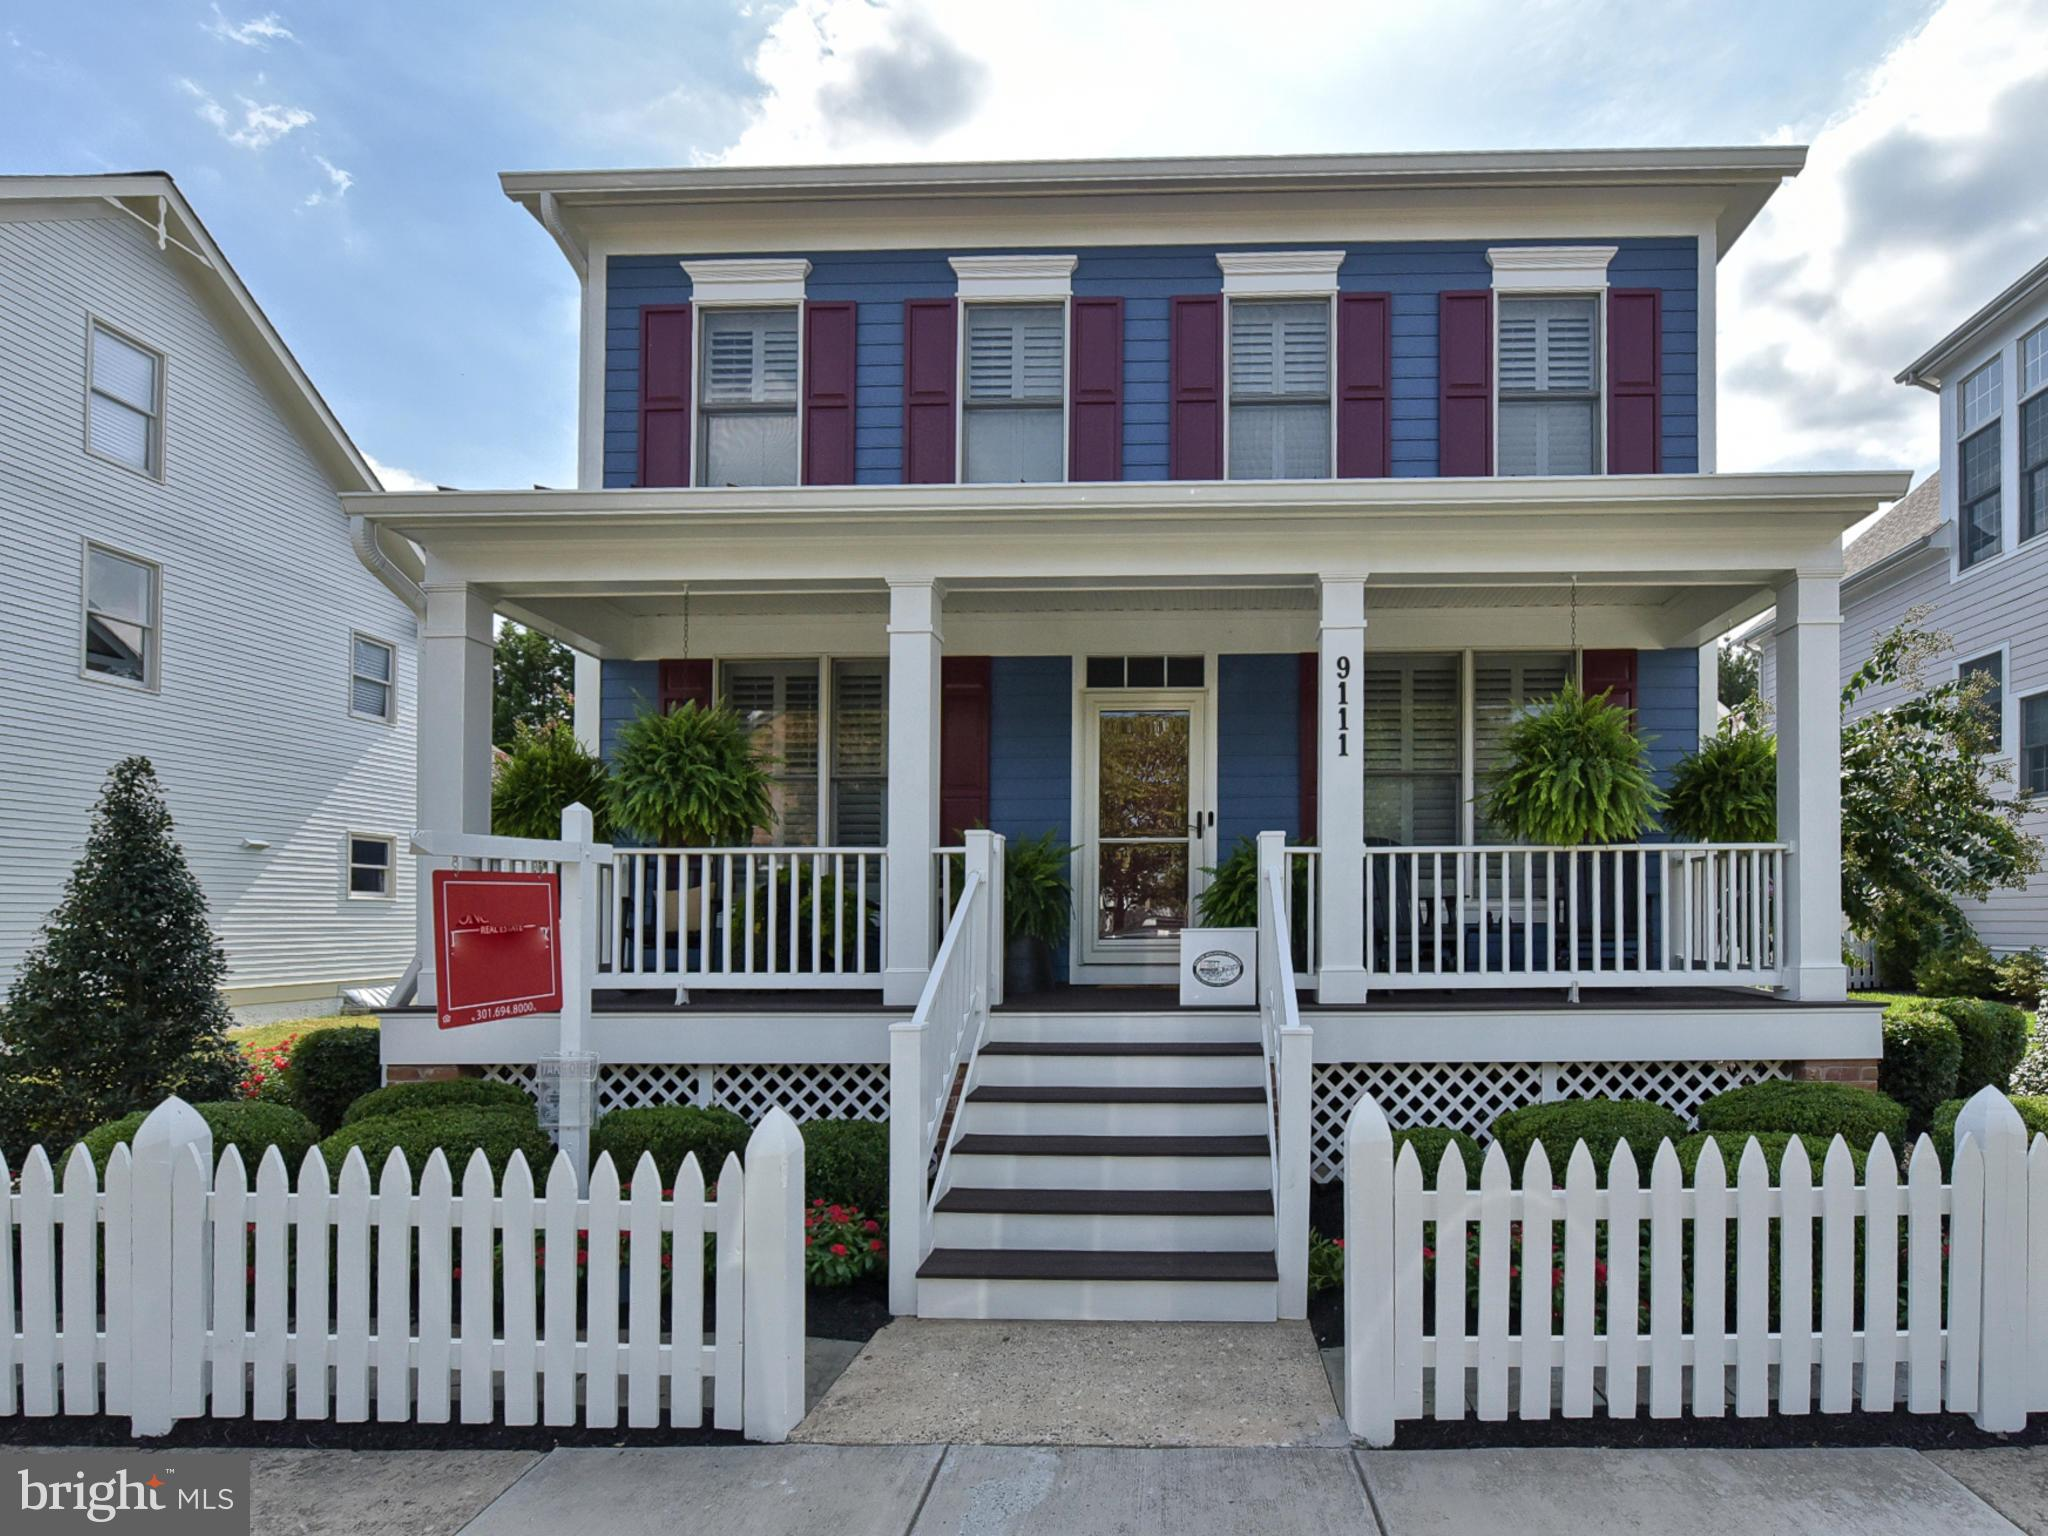 9111 BRIEN PLACE, FREDERICK, MD 21704